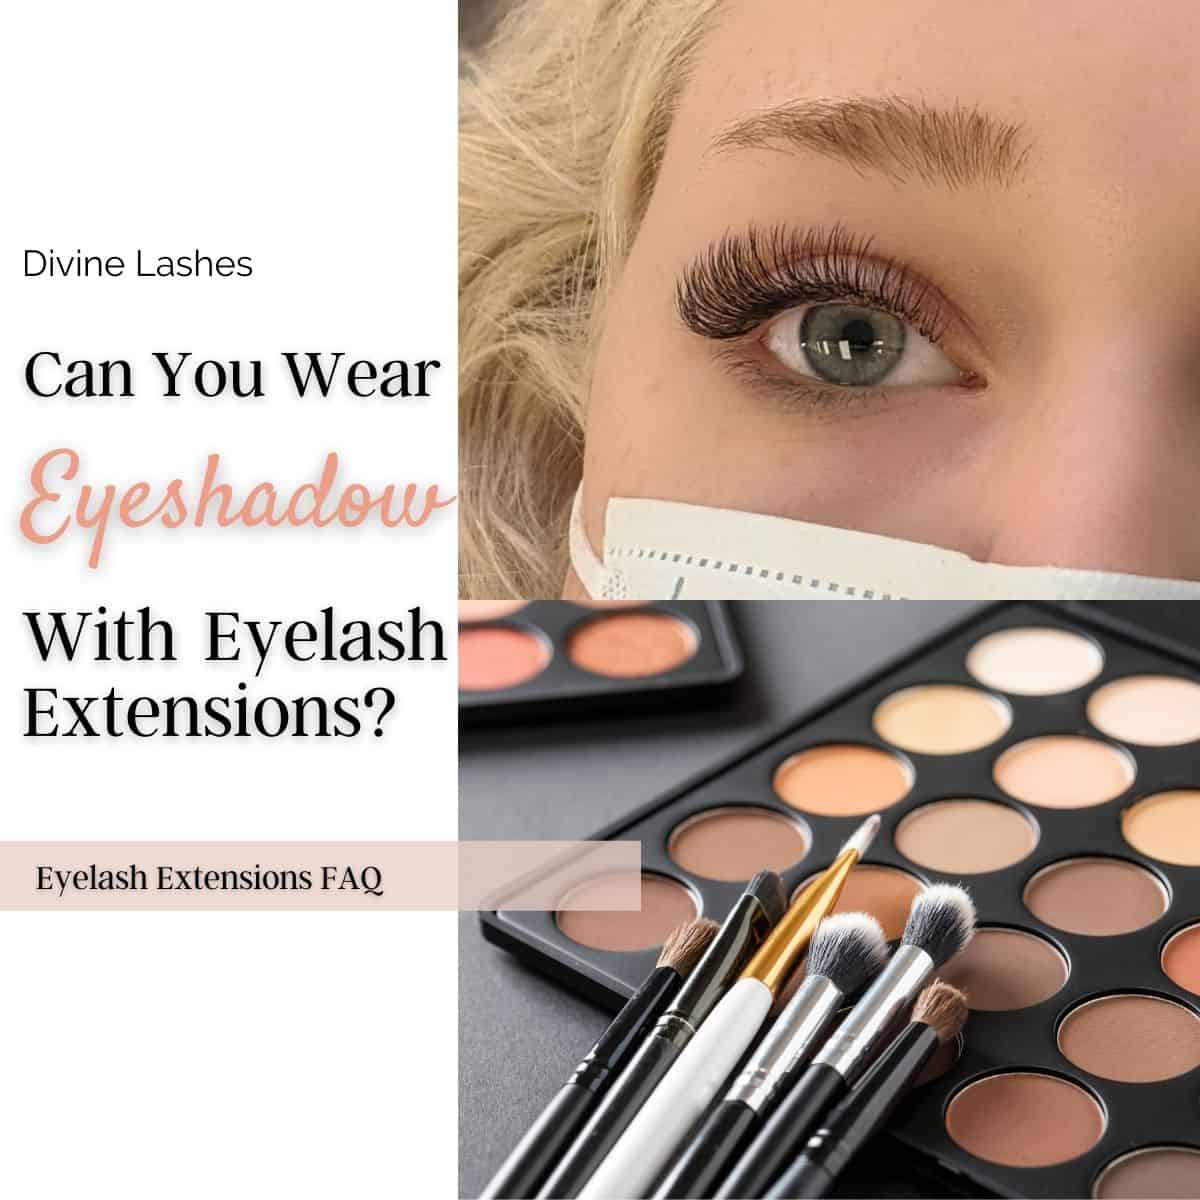 Can you wear eyeshadow with eyelash extensions? Eyelash extensions close-up with an eyeshadow palette